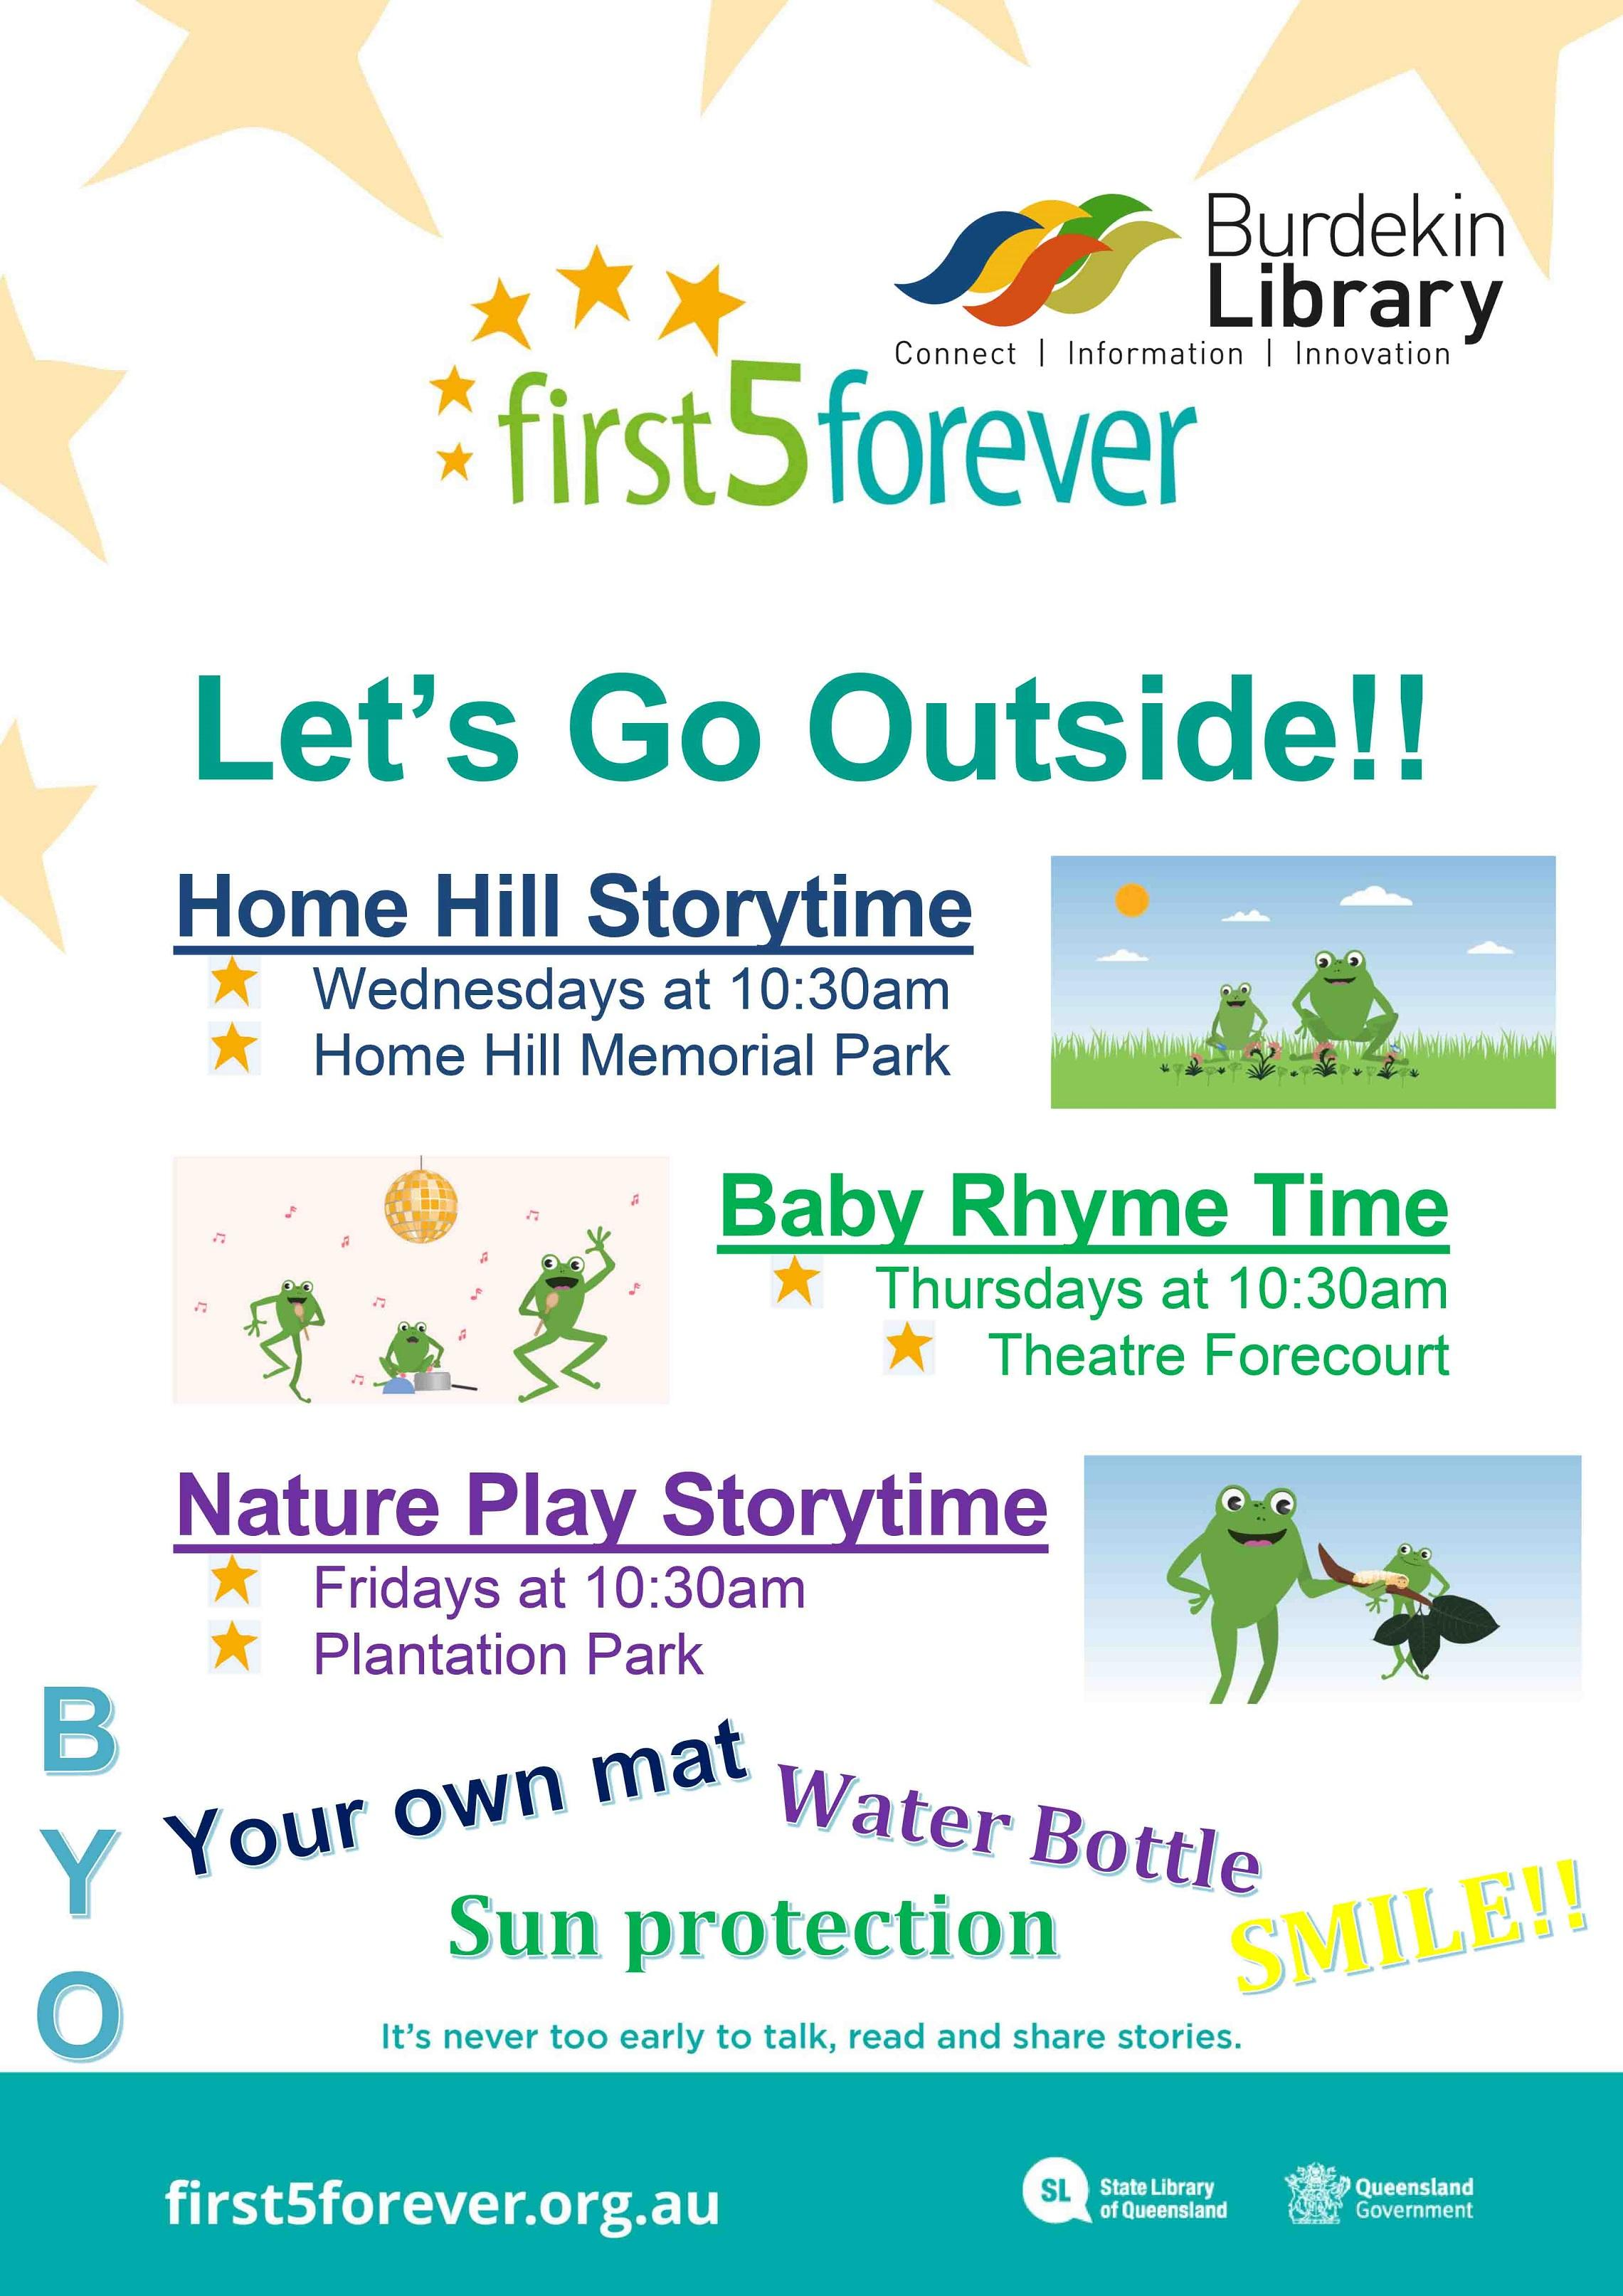 Image of First 5 Forever outdoor activities poster